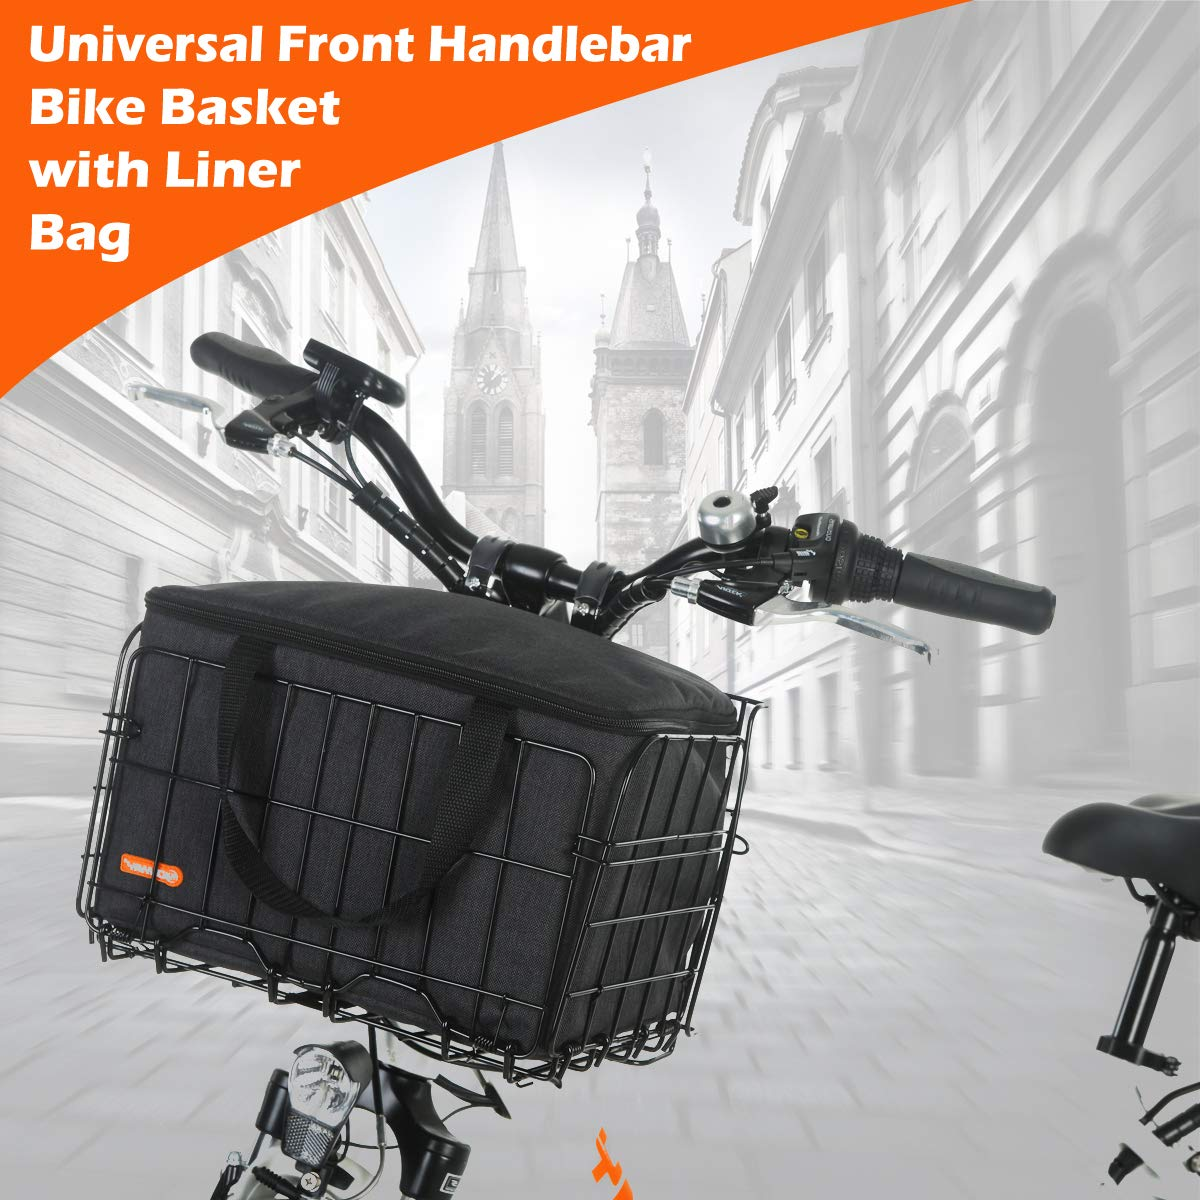 Huffy Bike Basket Liners and Bags Universal Fit NEW